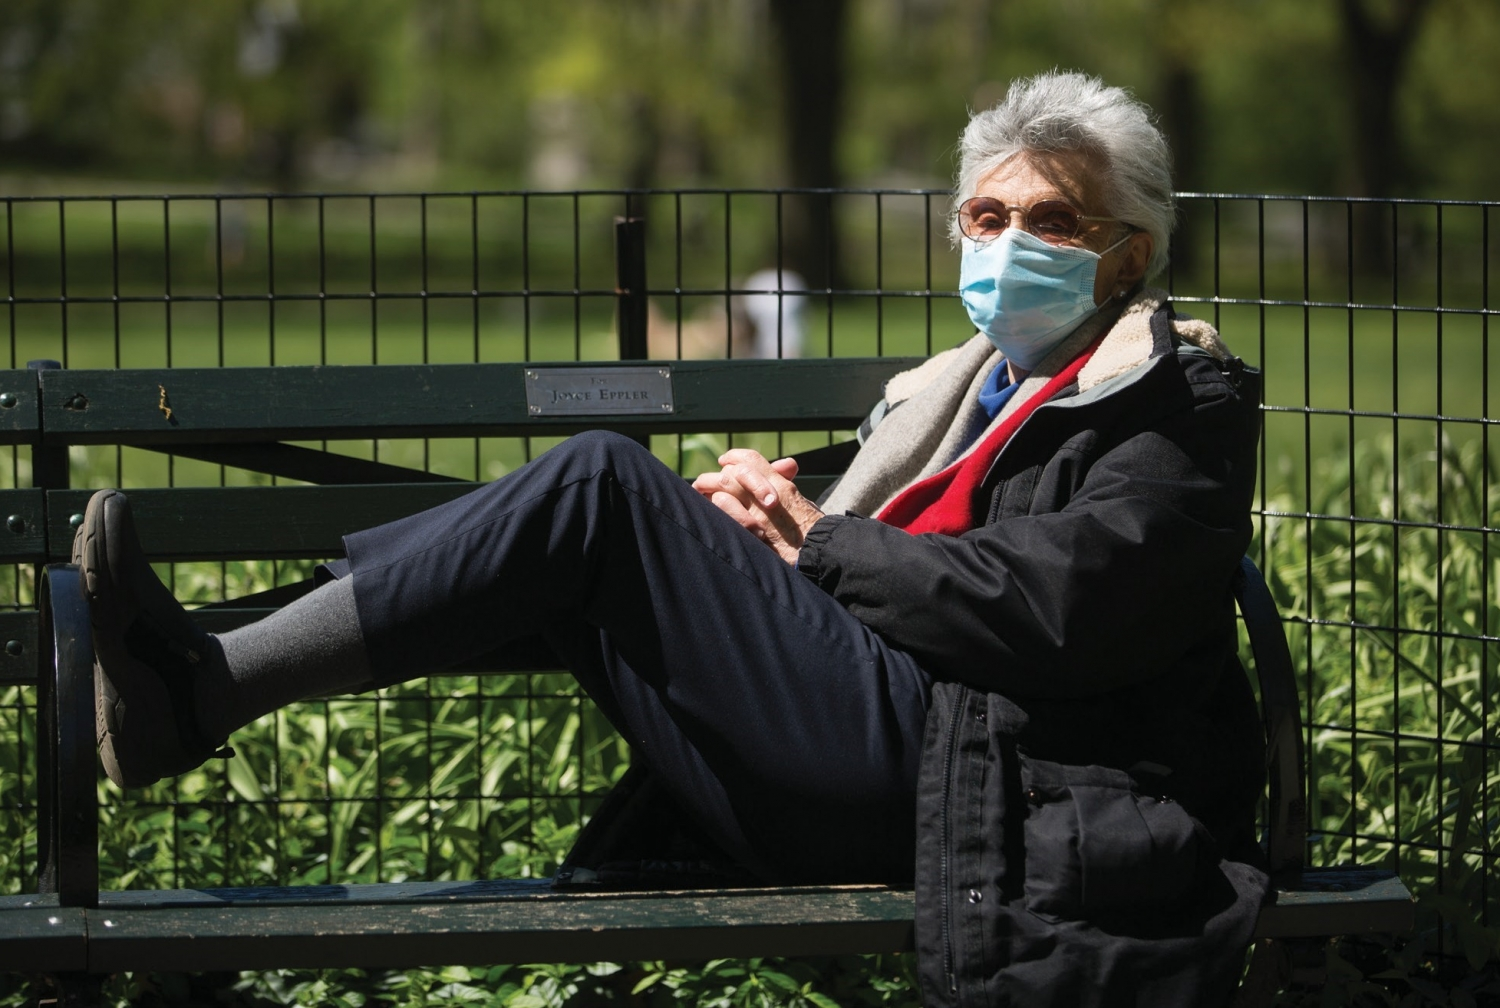 Barbara Milbauer enjoying Central Park while wearing a face mask